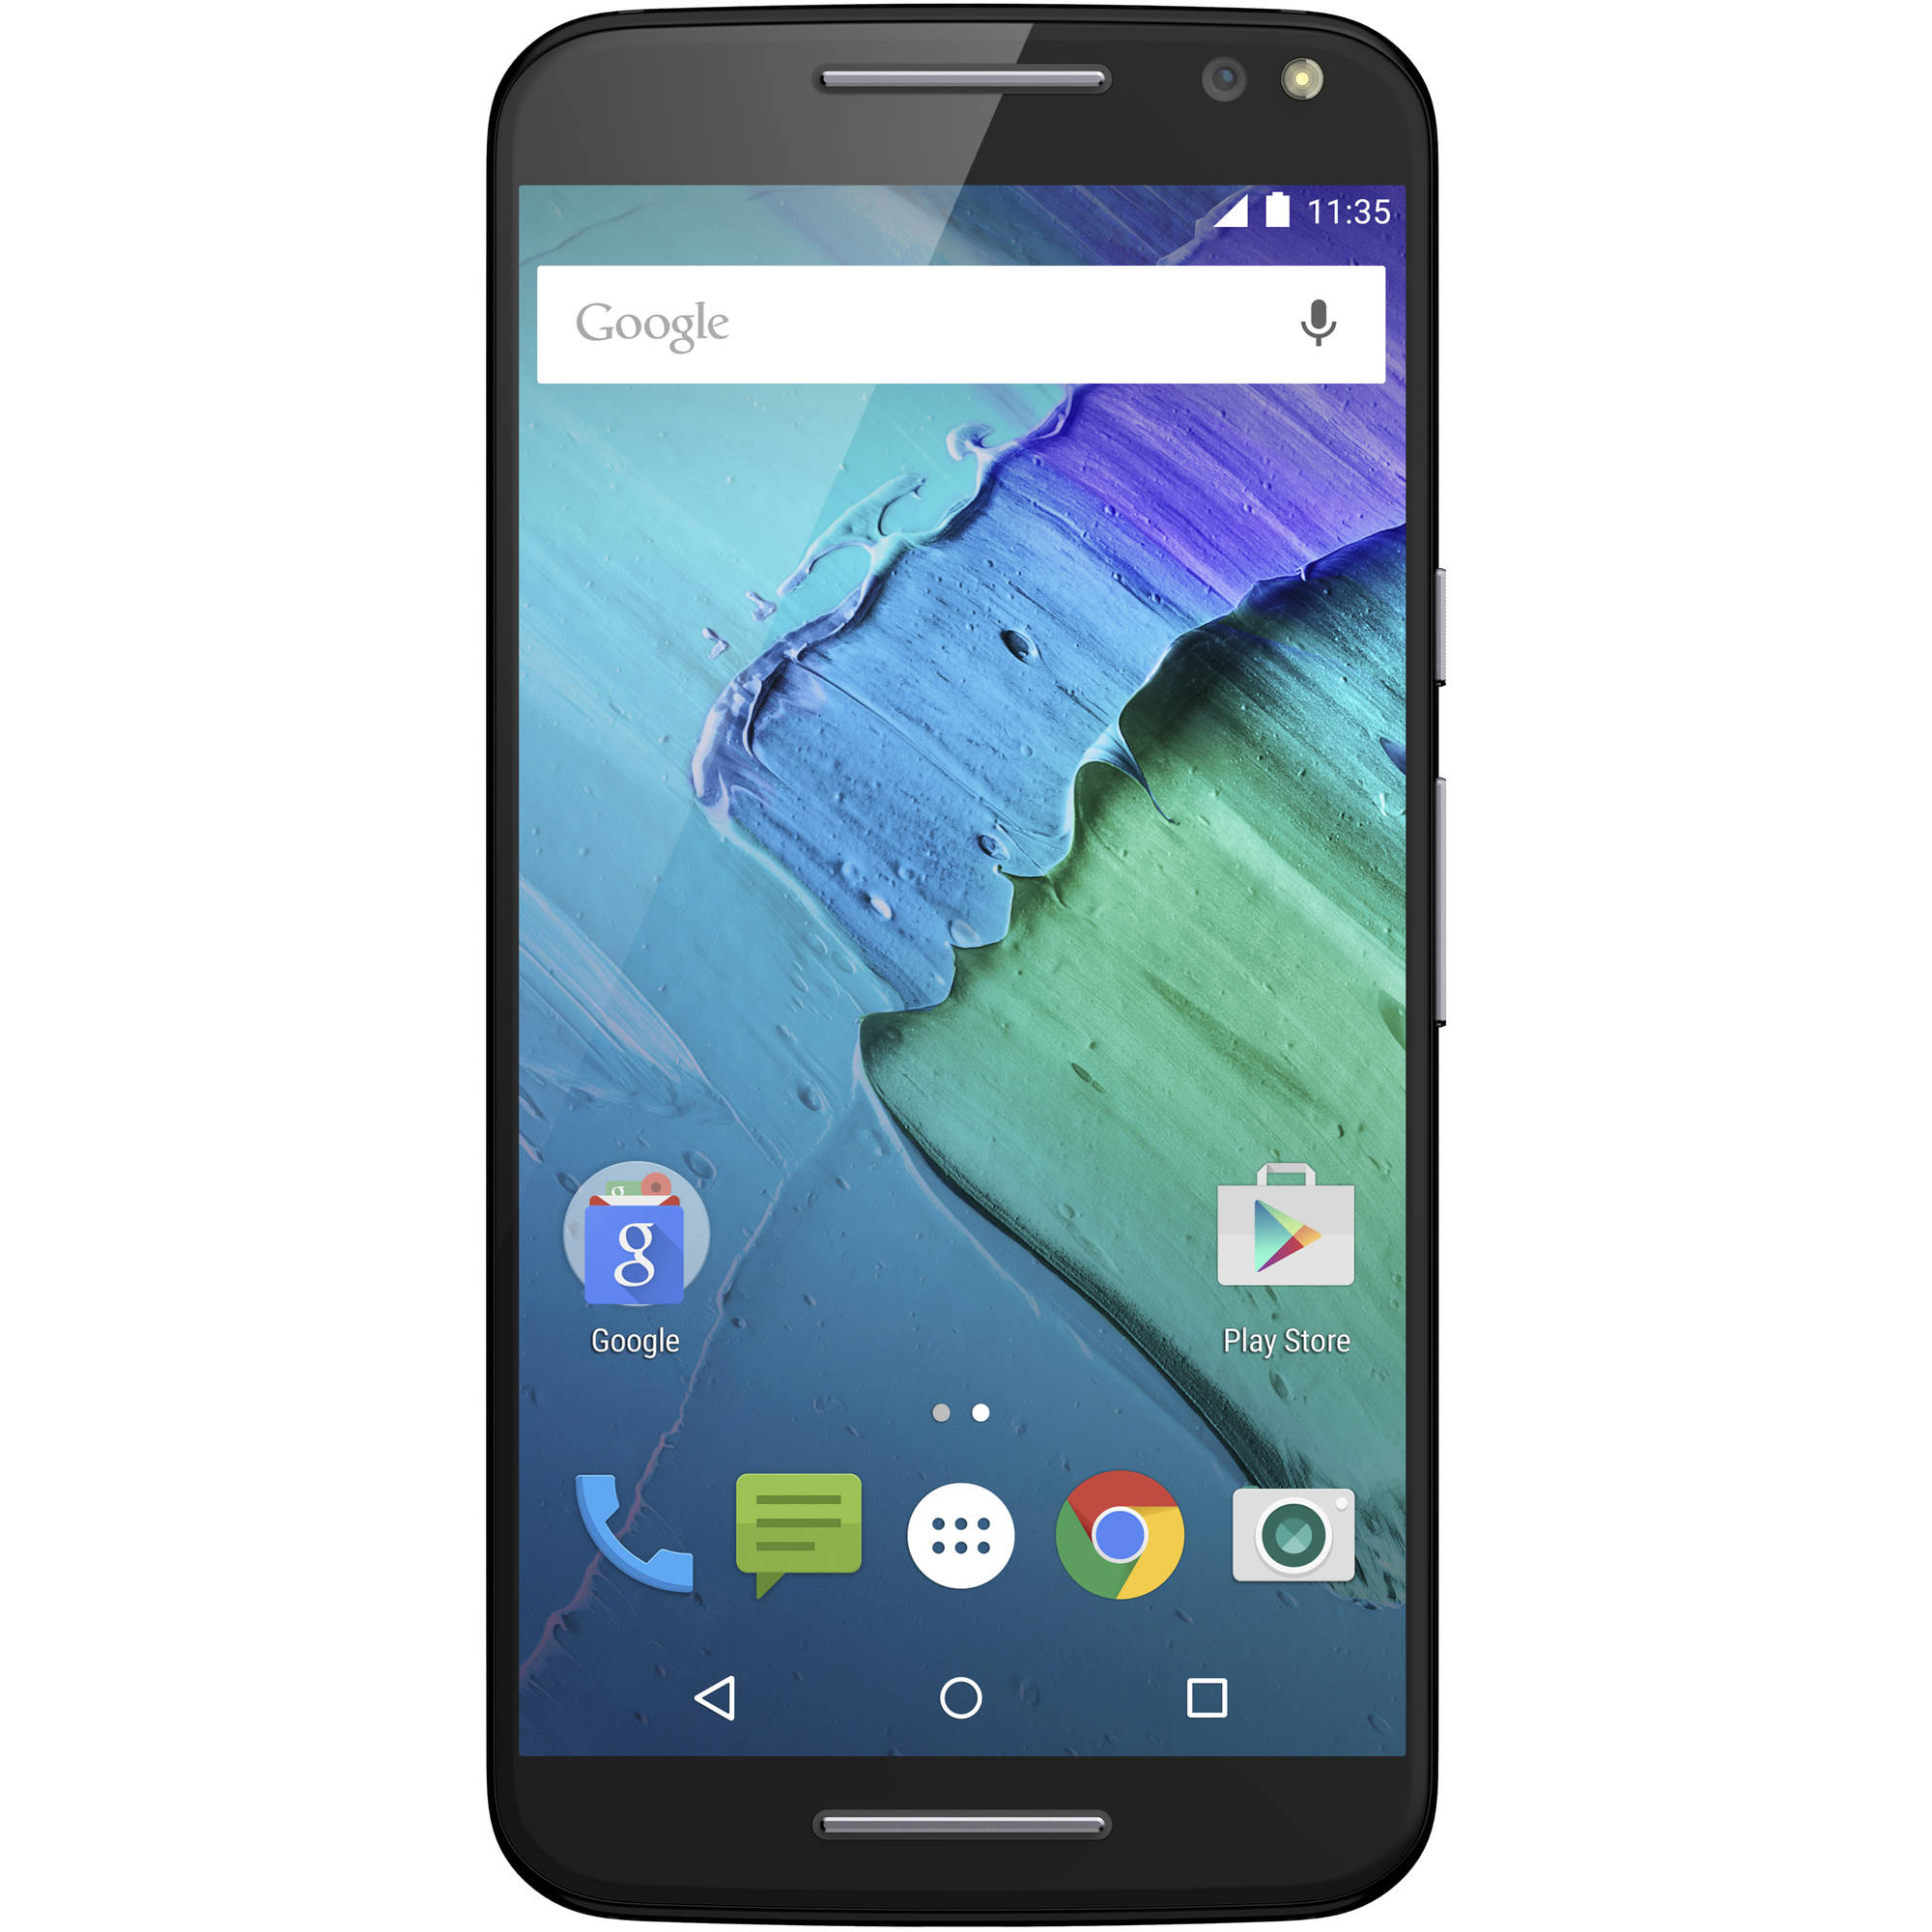 "New Motorola Moto X Pure Edition 32GB XT1575 GSM + CDMA Unlocked 4G LTE 5.7"" IPS LCD 3GB RAM 21MP Smartphone - Black - US Warranty"